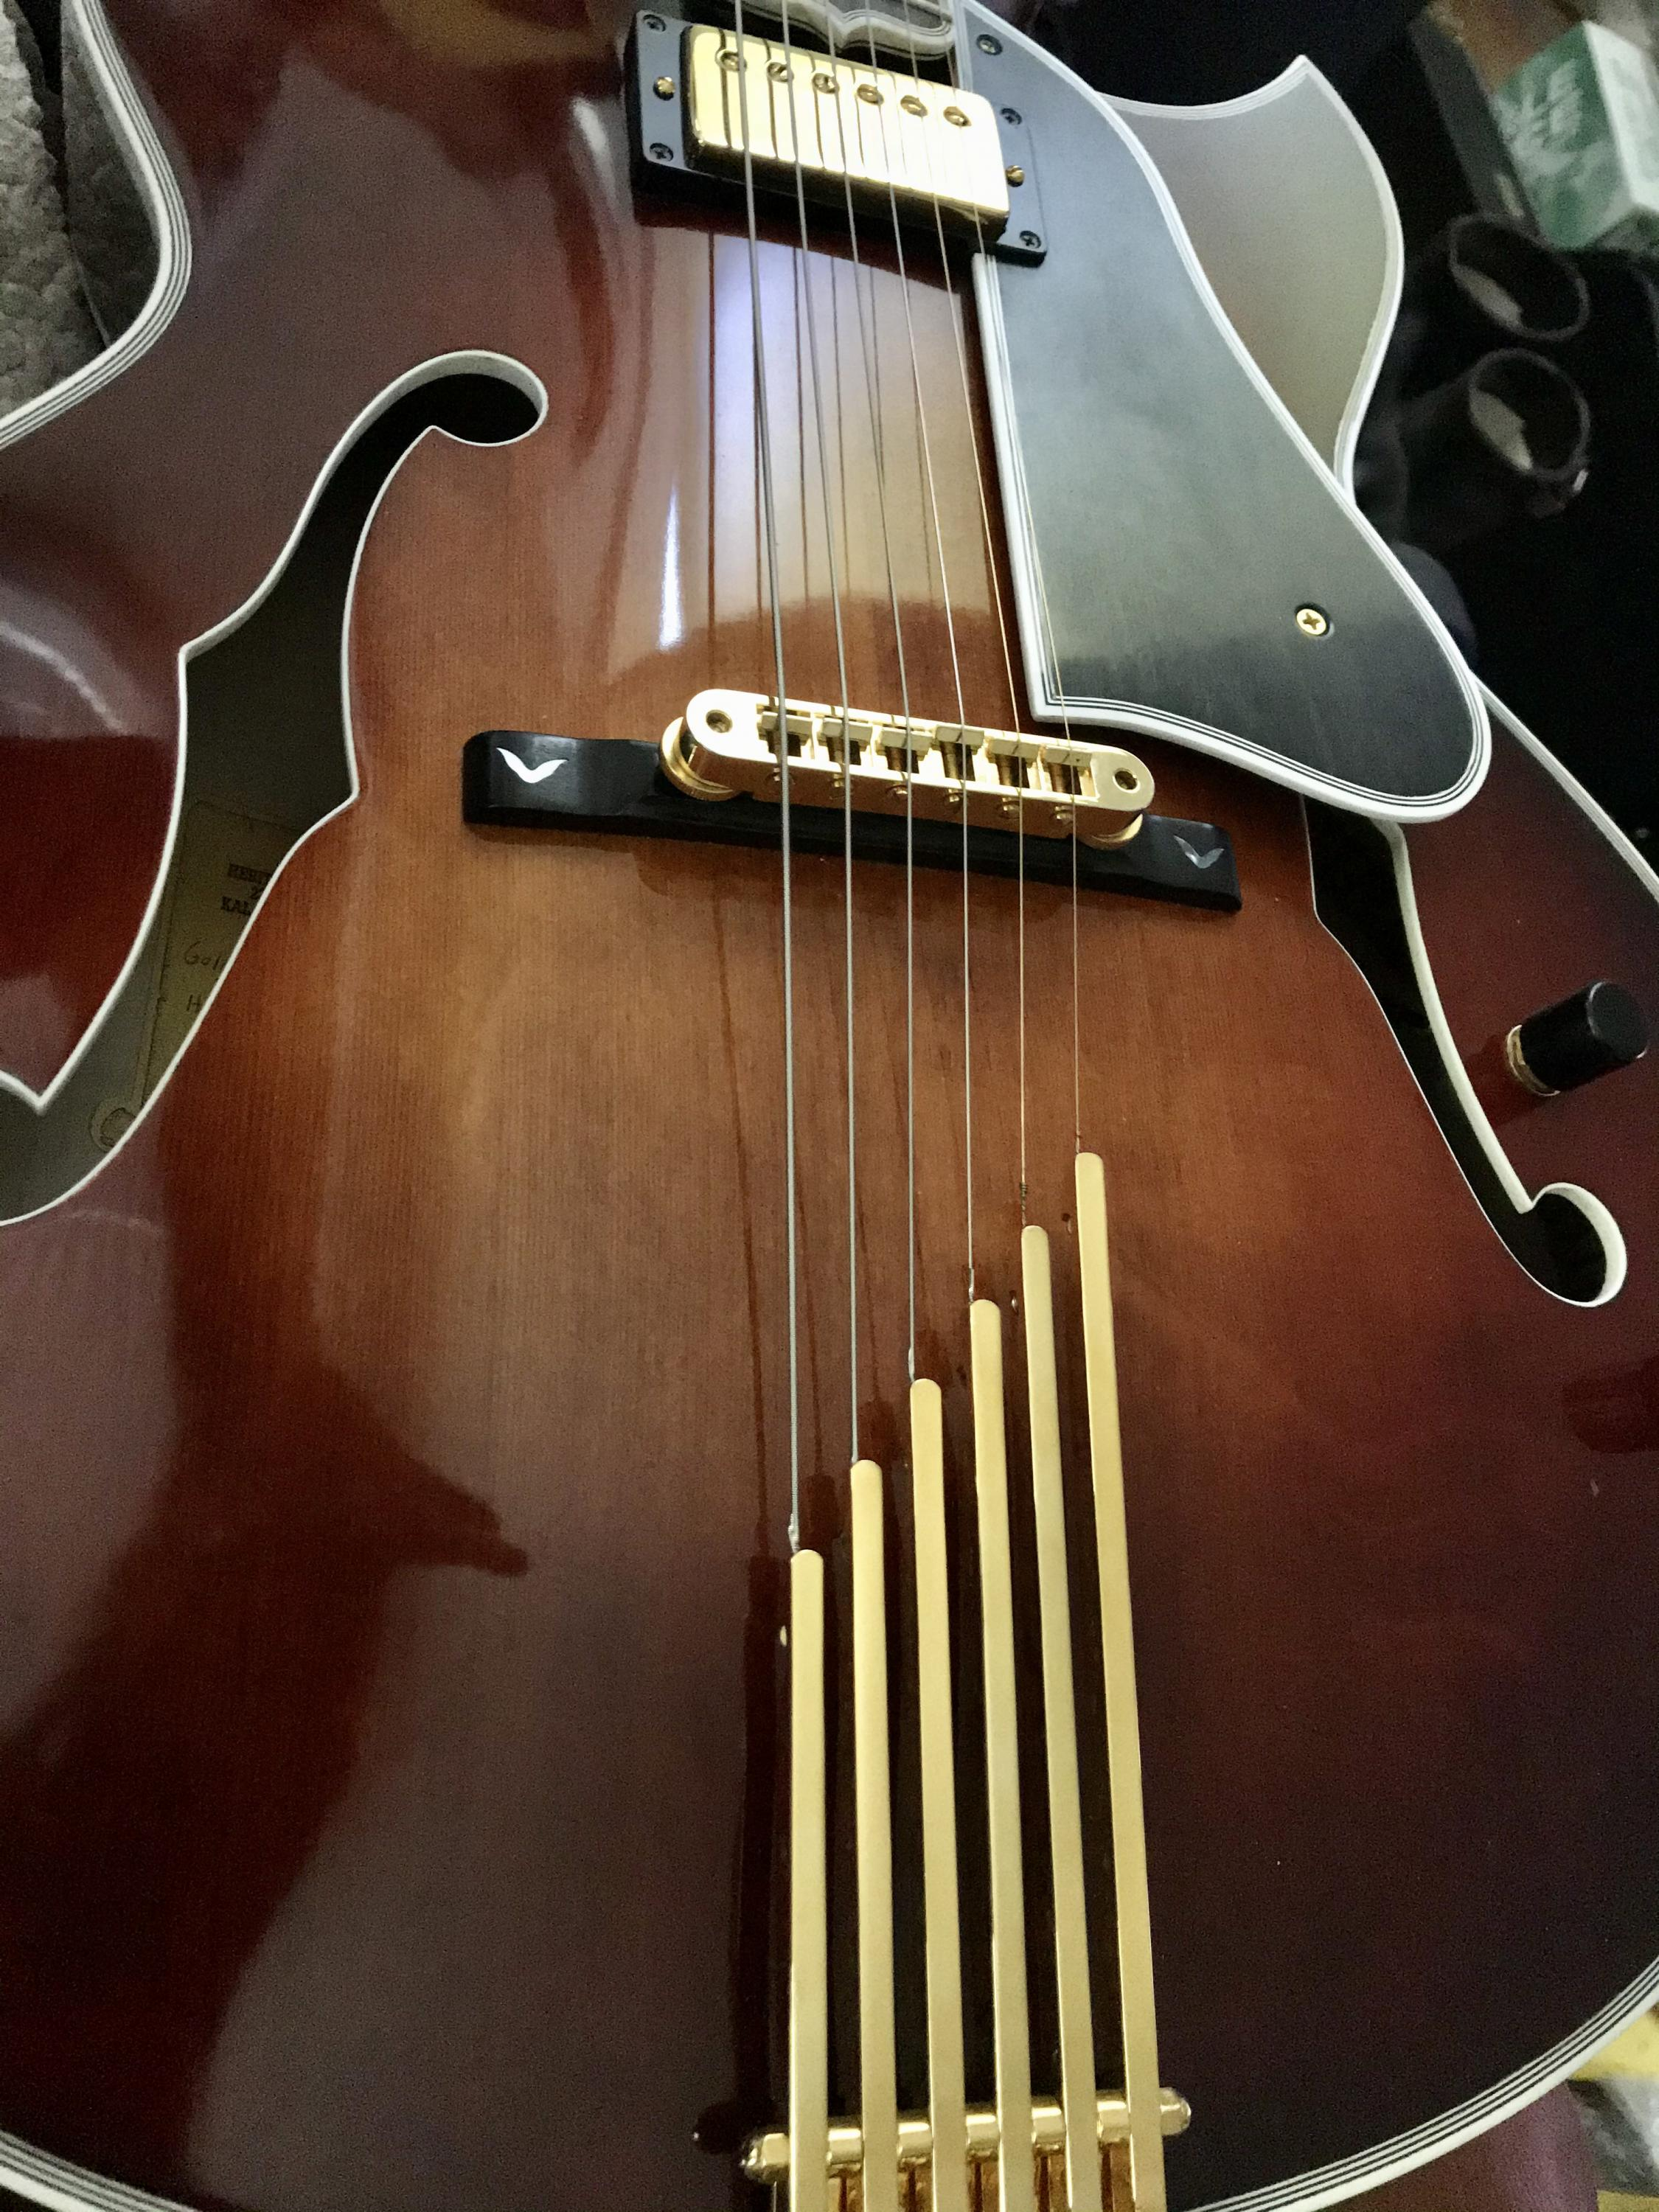 Two good things about Heritage guitars-2a7e0680-6dc6-4e39-bad0-2ede0eee60f2-jpg